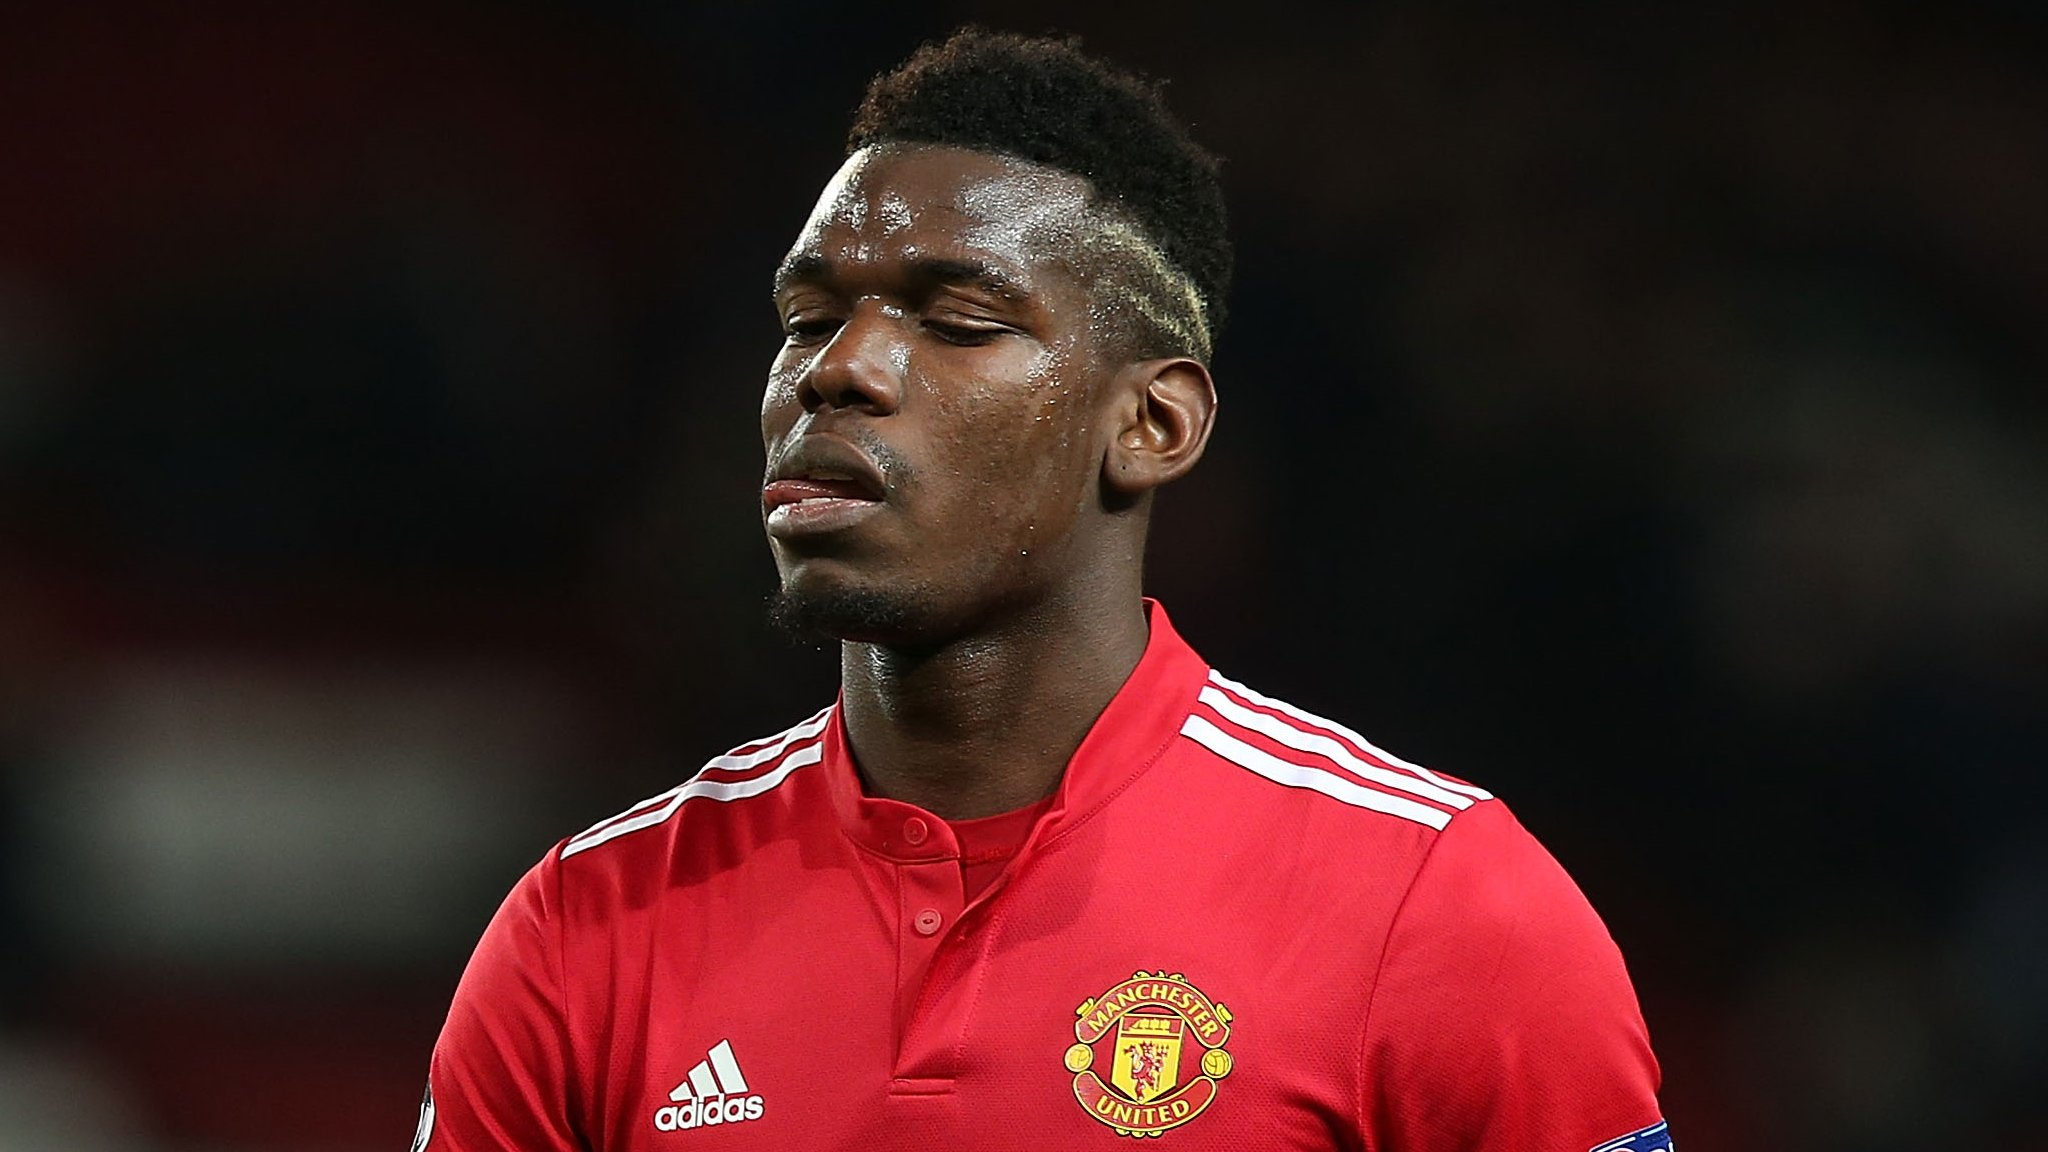 Paul Pogba: Manchester United midfielder 'can't be happy', says France coach Didier Deschamps